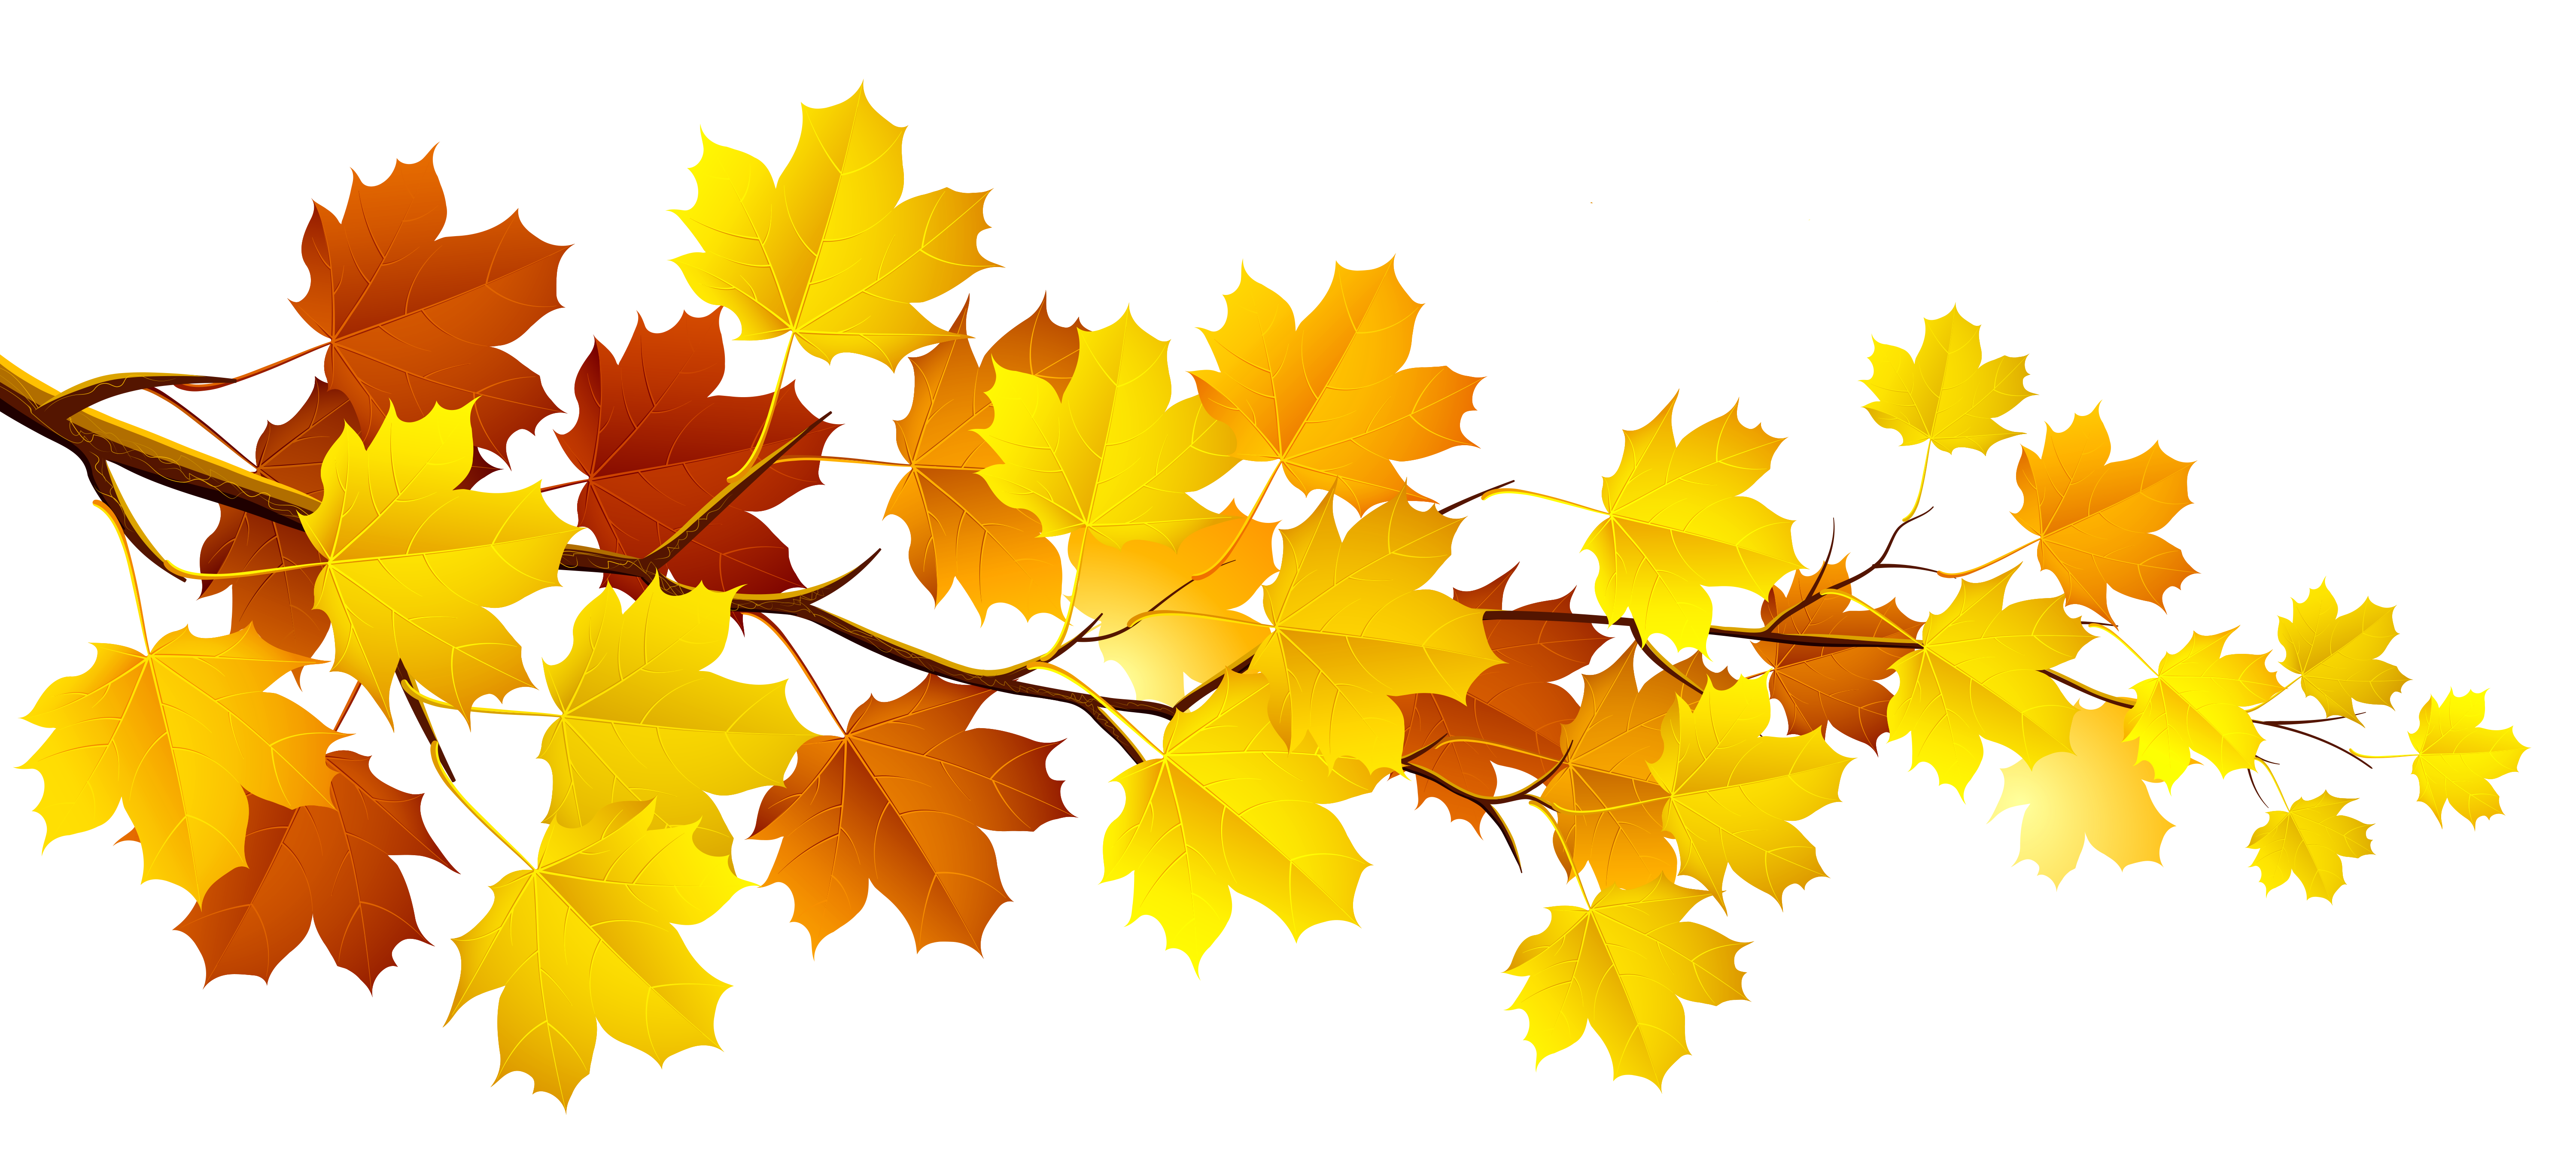 fall leaves clipart free clipart images 3 clipartcow clipartix [ 5999 x 2681 Pixel ]